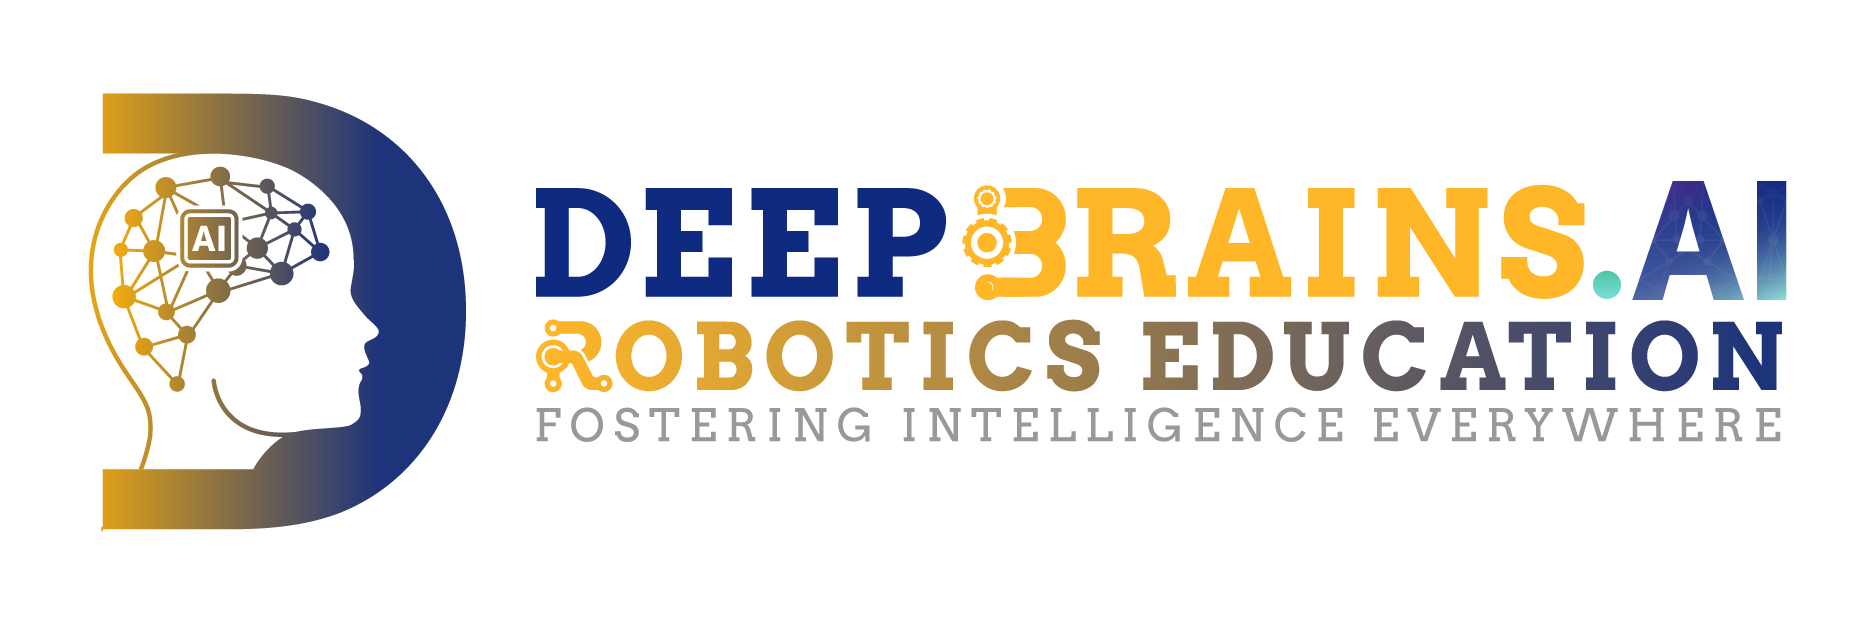 DeepBrains AI & Robotics Inc.